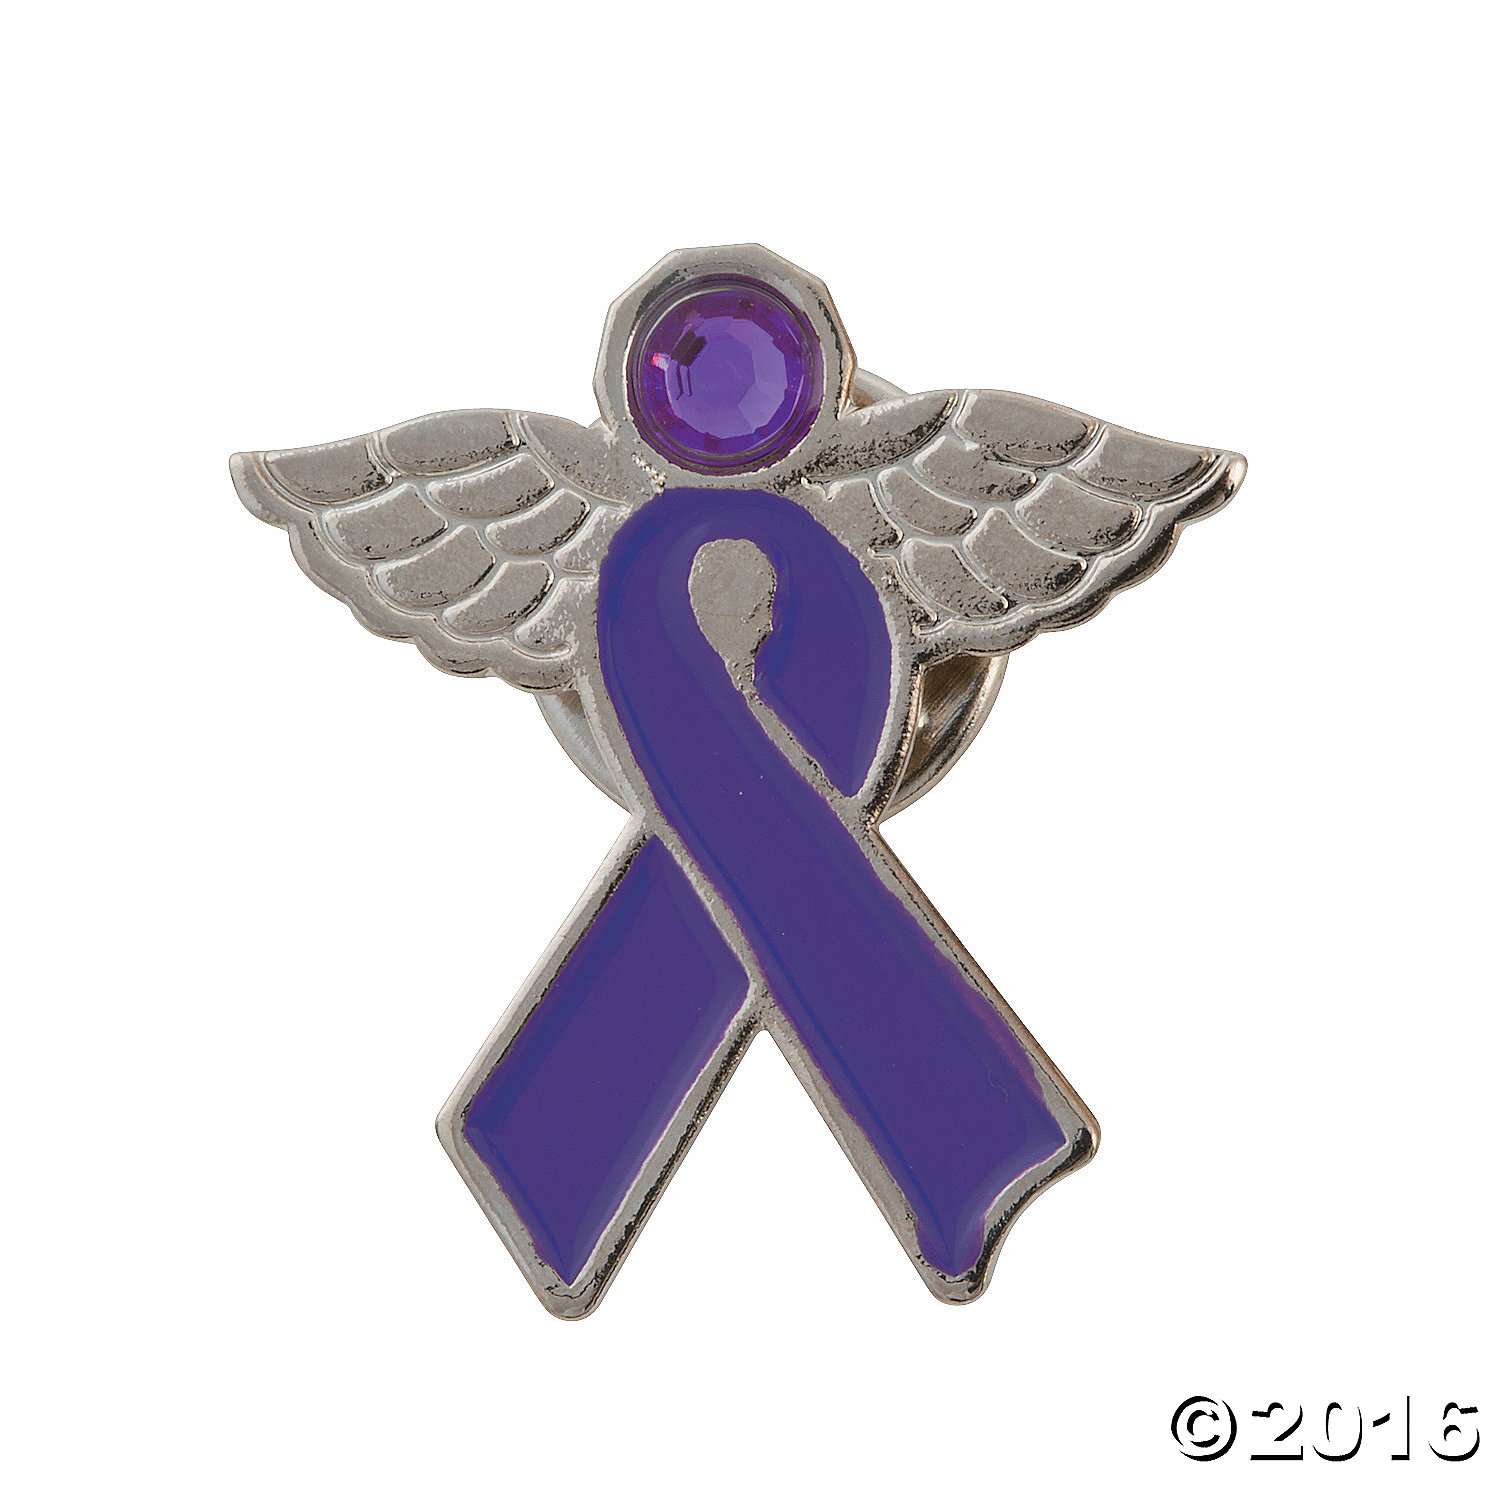 lupus cancer pancreatic awareness alzheimers sarcoidosis sjogrens bracelet awarenessepilepsyalzheimers alzheimer pin crohns epilepsy fibro